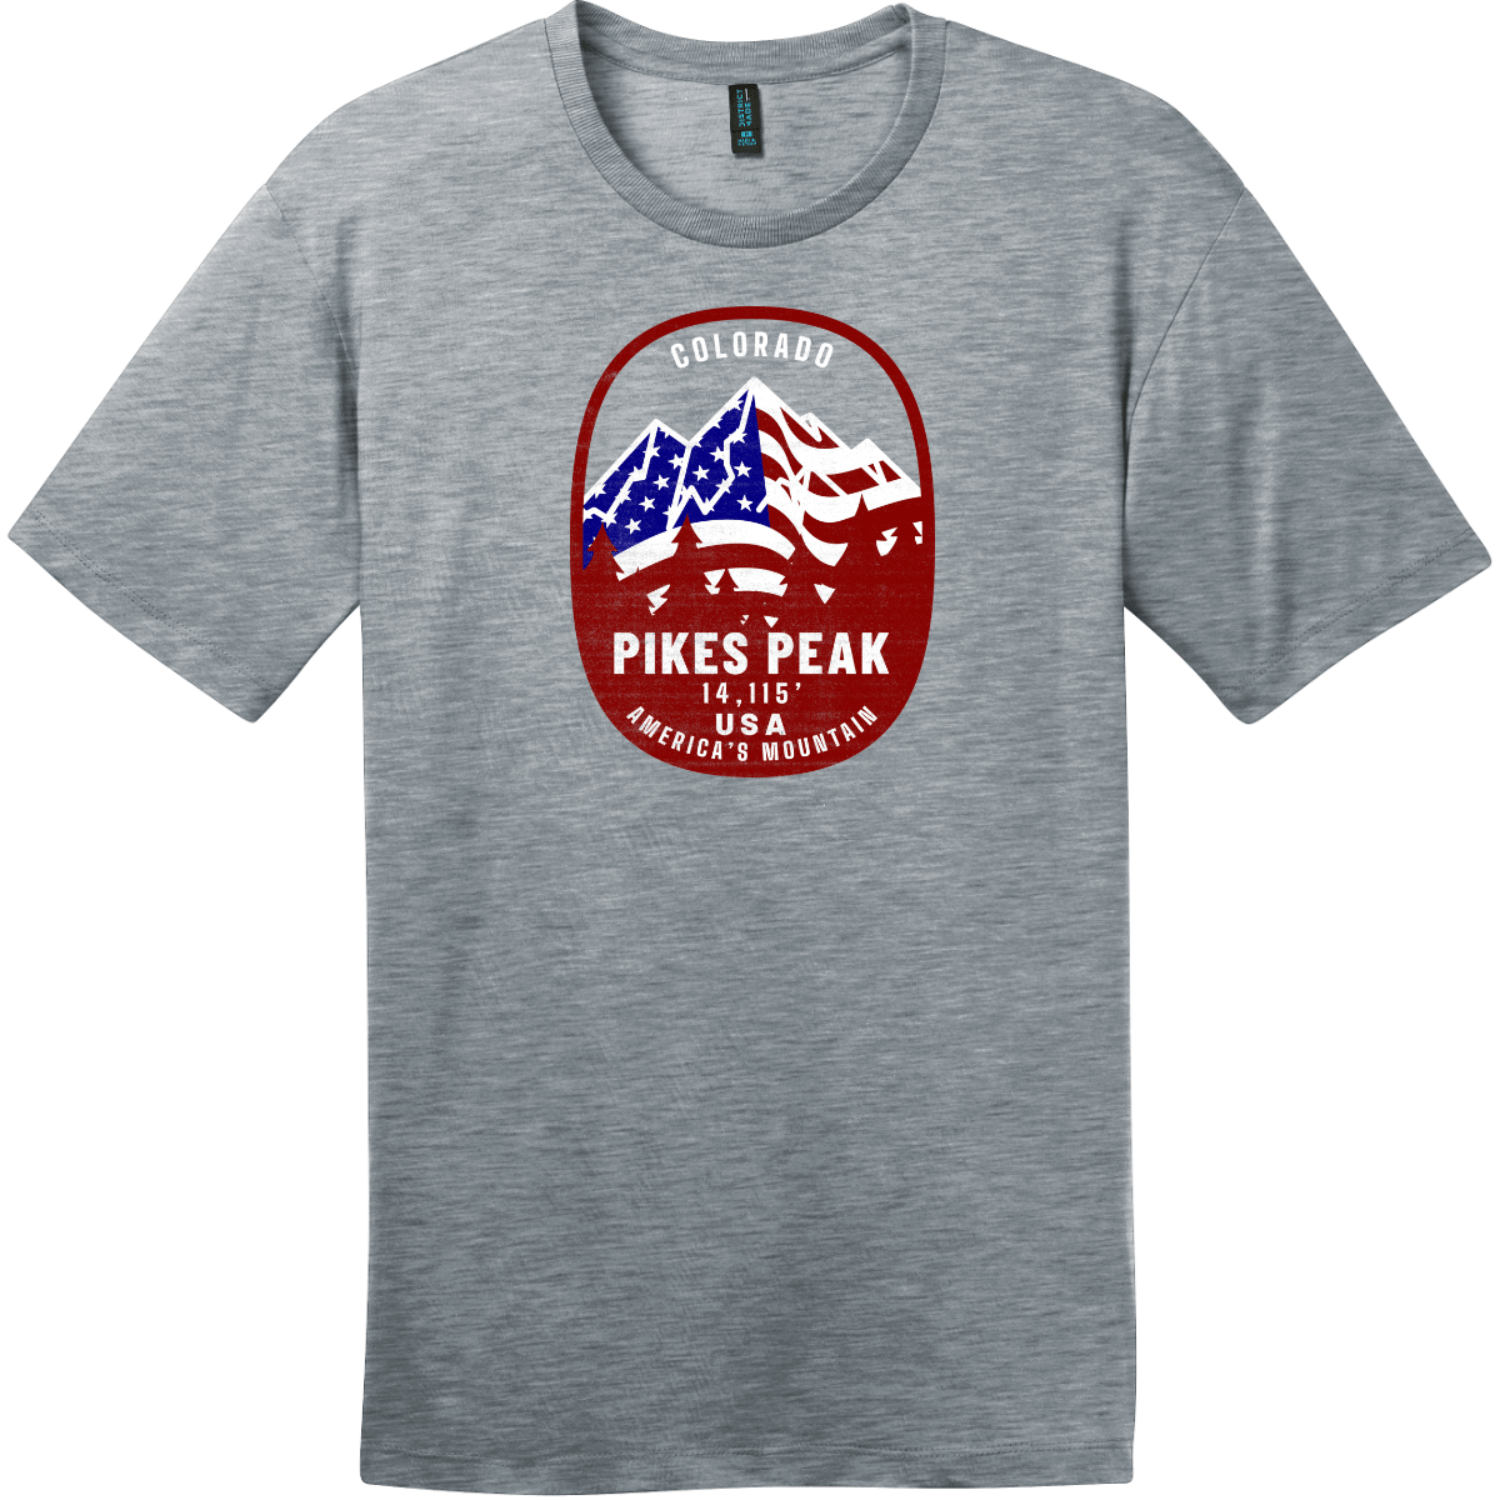 Pikes Peak Americas Mountain T-Shirt Heathered Steel District Perfect Weight Tee DT104